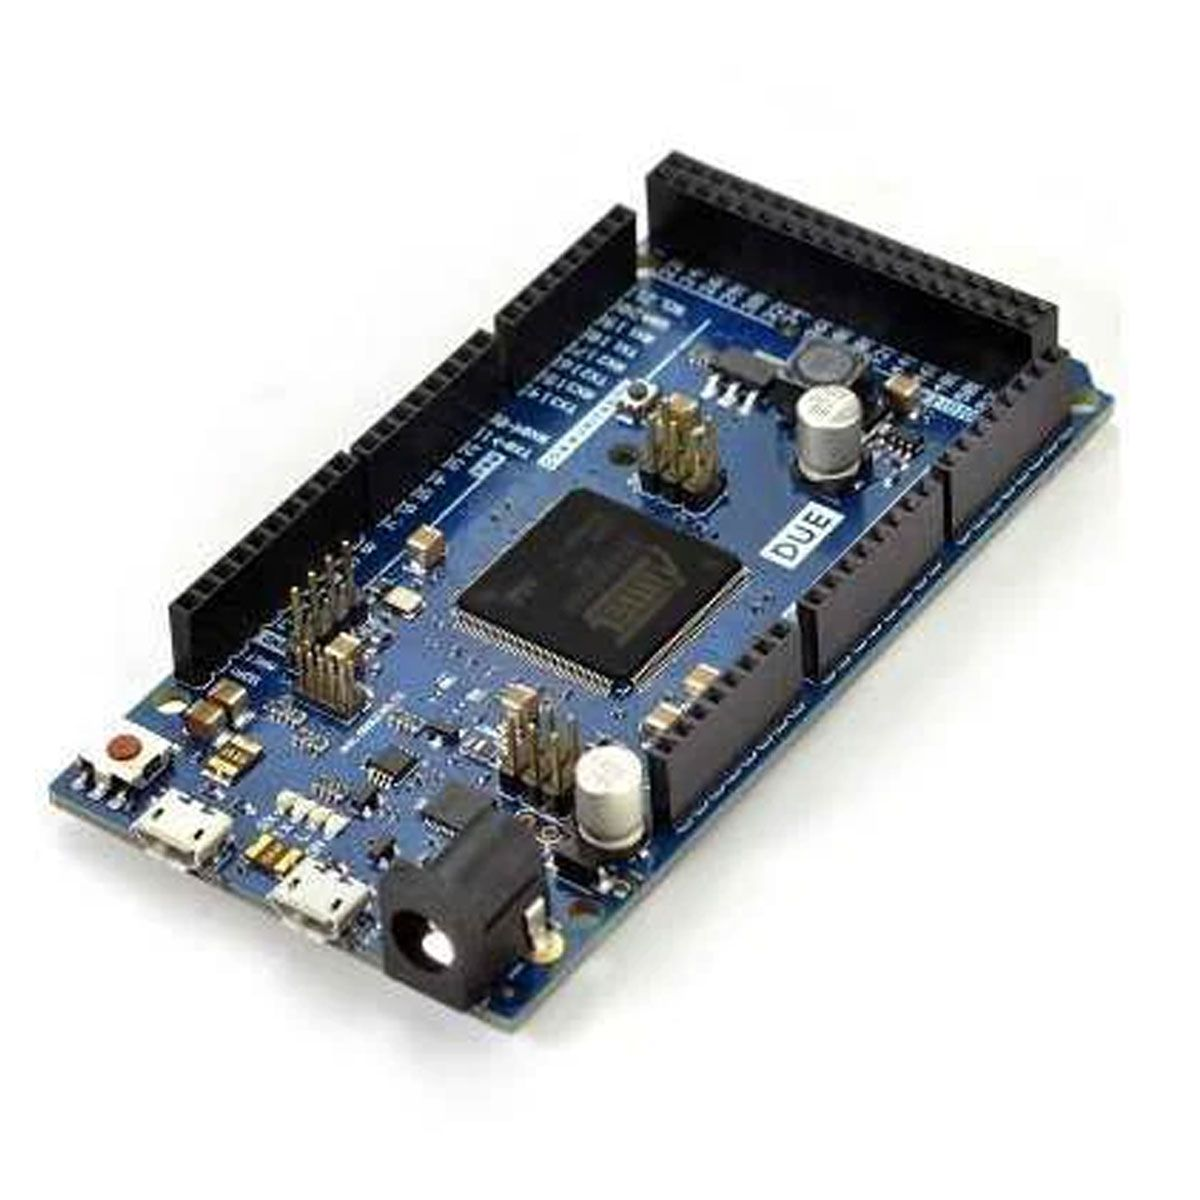 Placa Due R3 ARM Cortex-M3 32 bit Compatível com Arduino